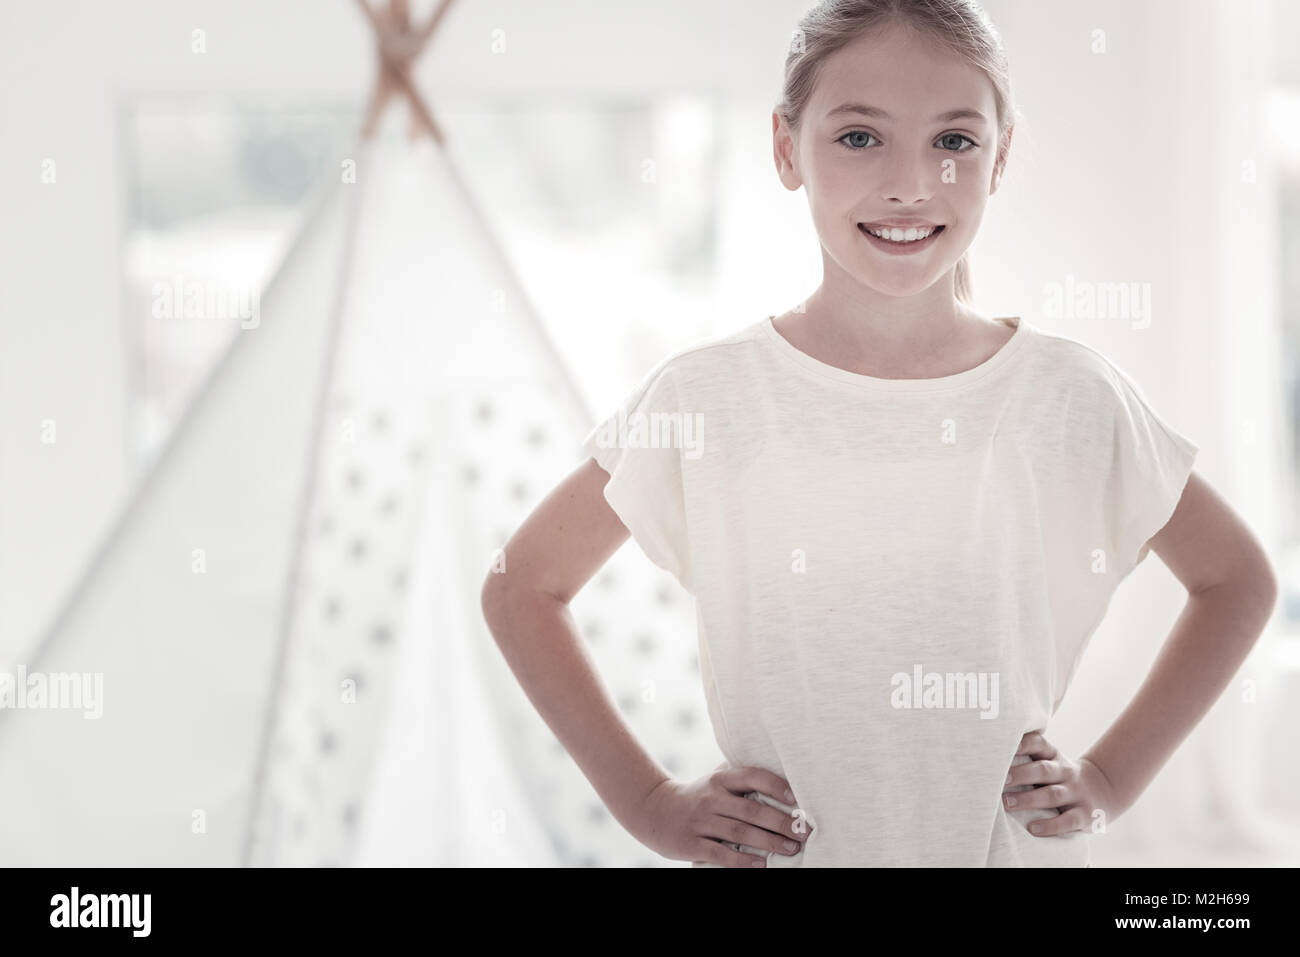 Beautiful girl smiling and wearing a t-shirt - Stock Image